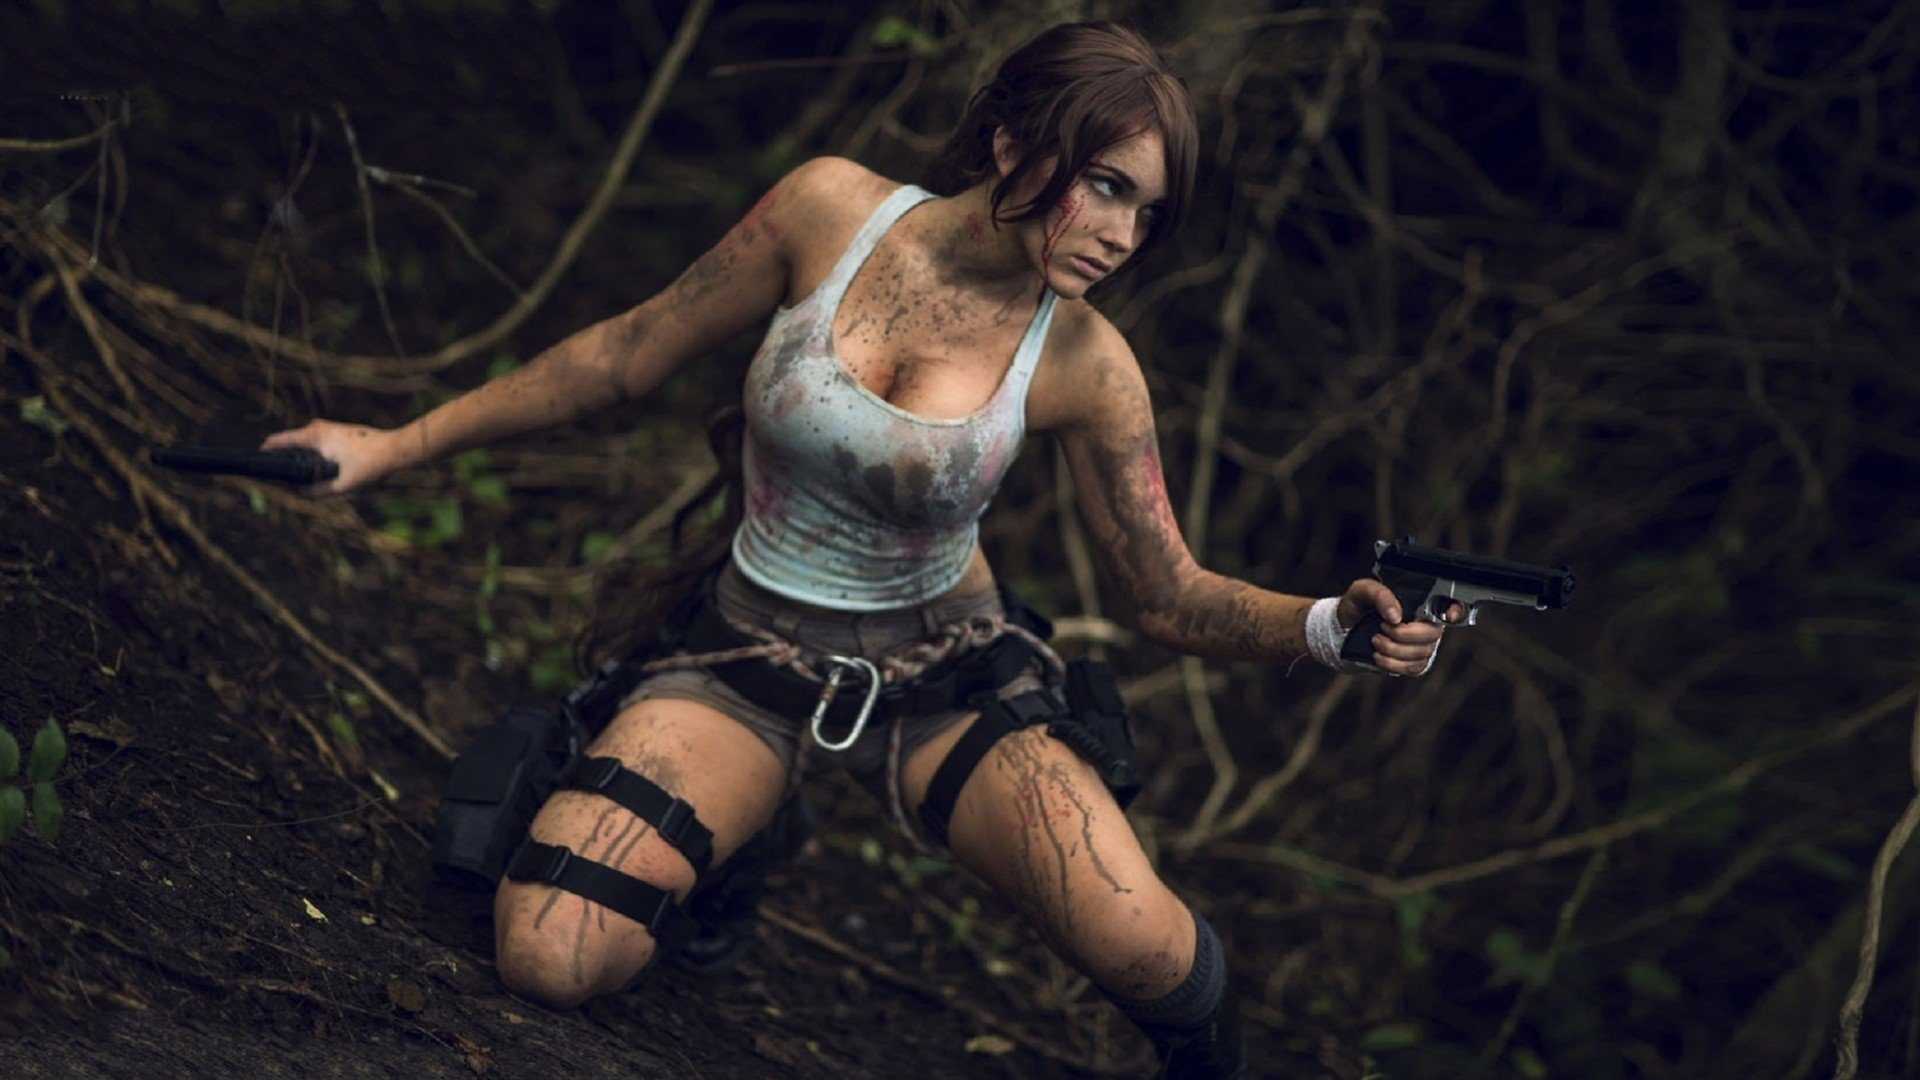 Most beauty pronestar yomb raider prone sex  exposed photo